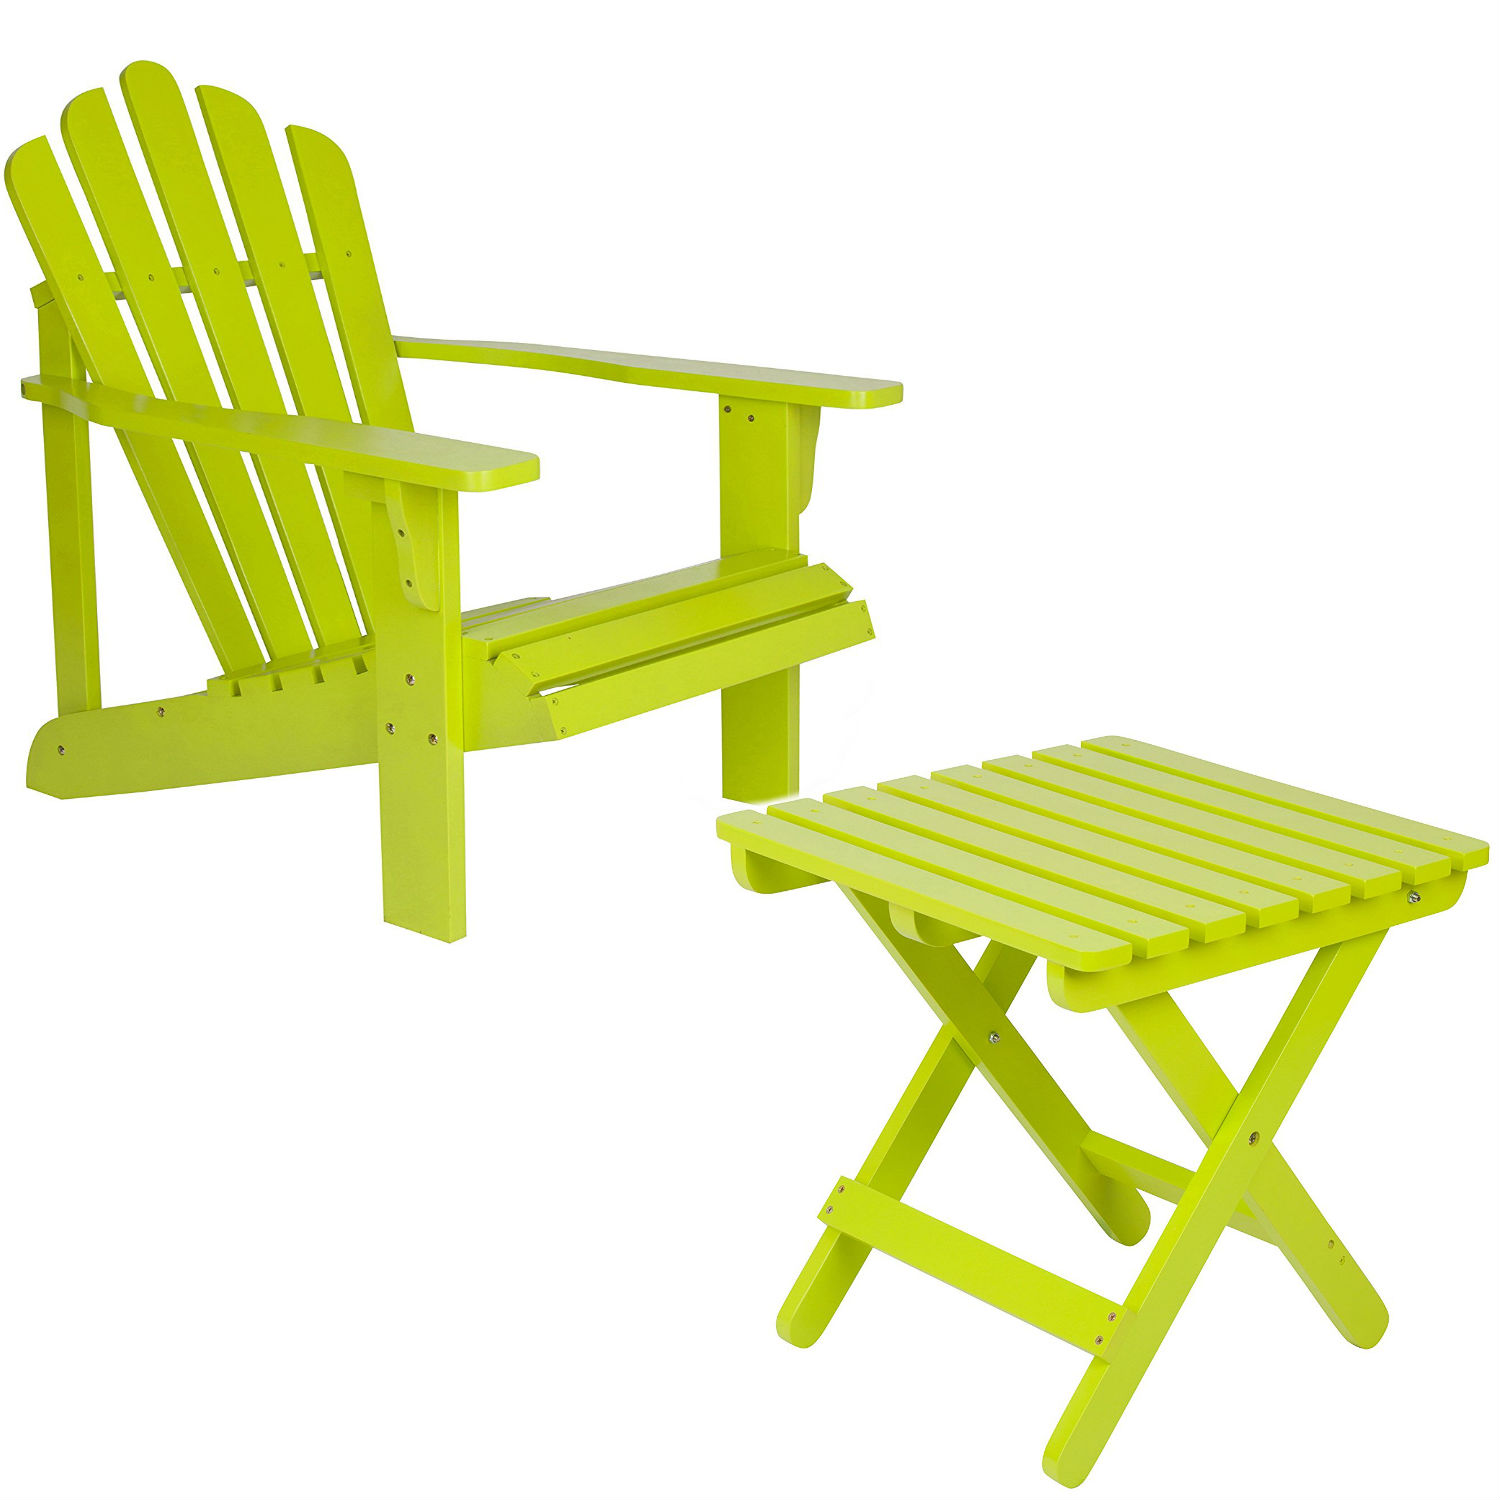 Garden adirondack chairs with table